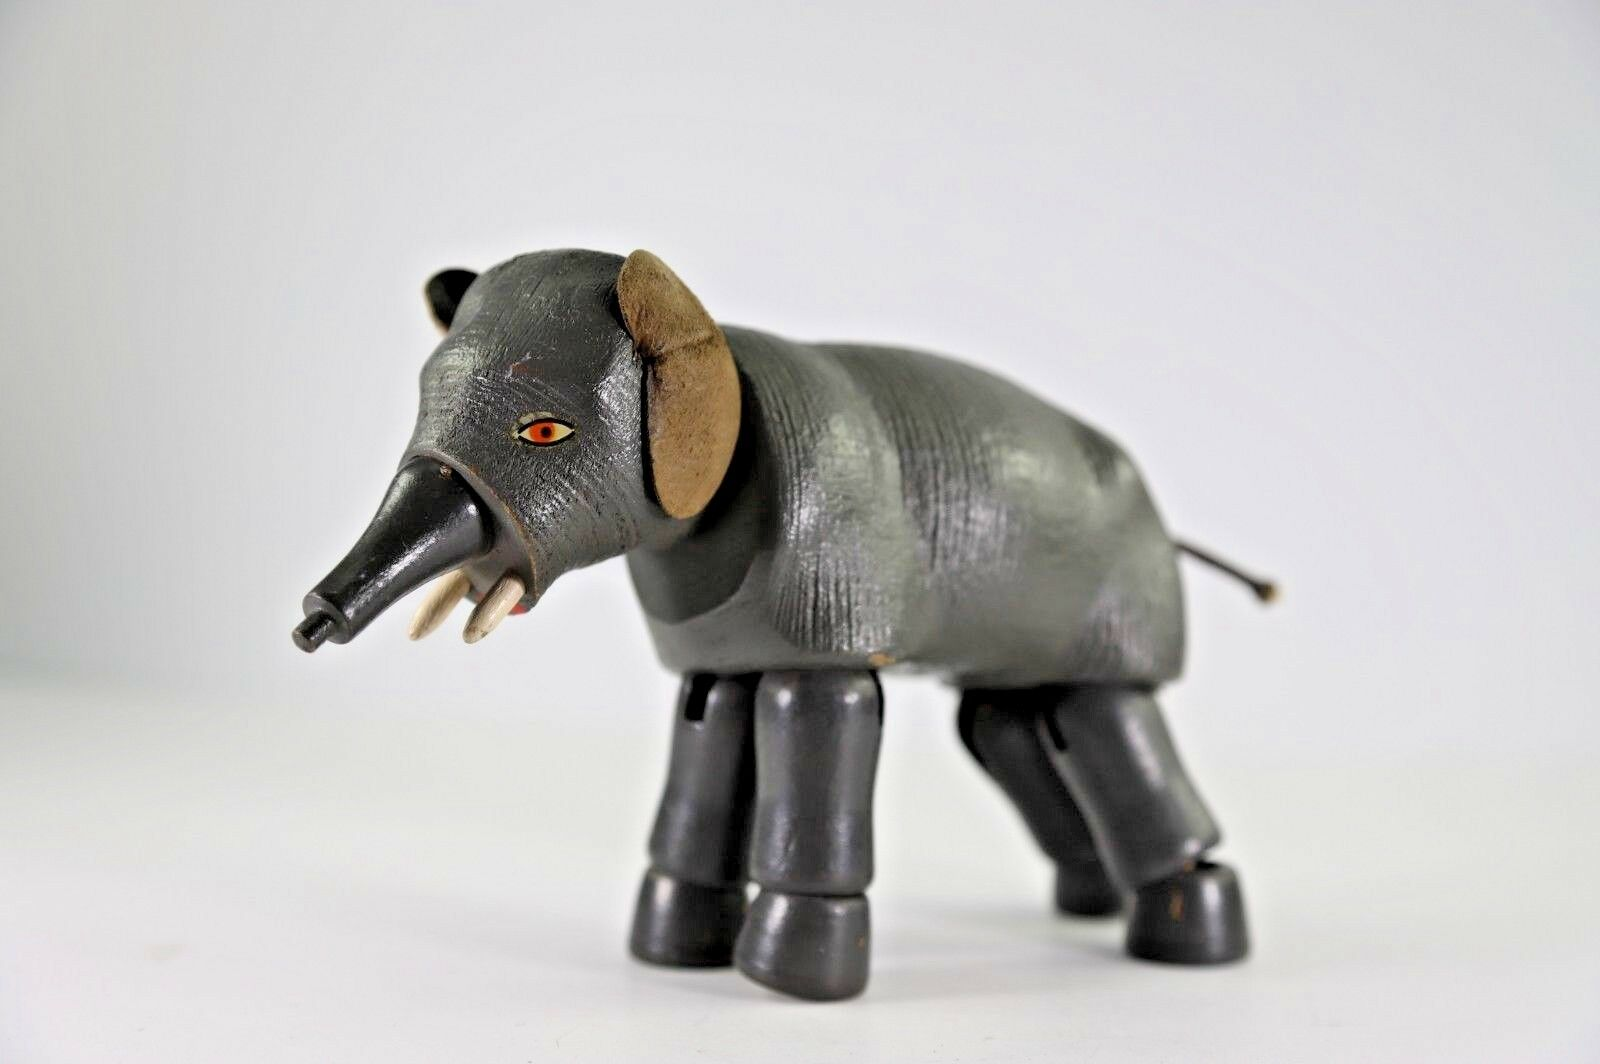 Antique shoesnhut Circus Elephant with Painted Eyes and Leather Ears